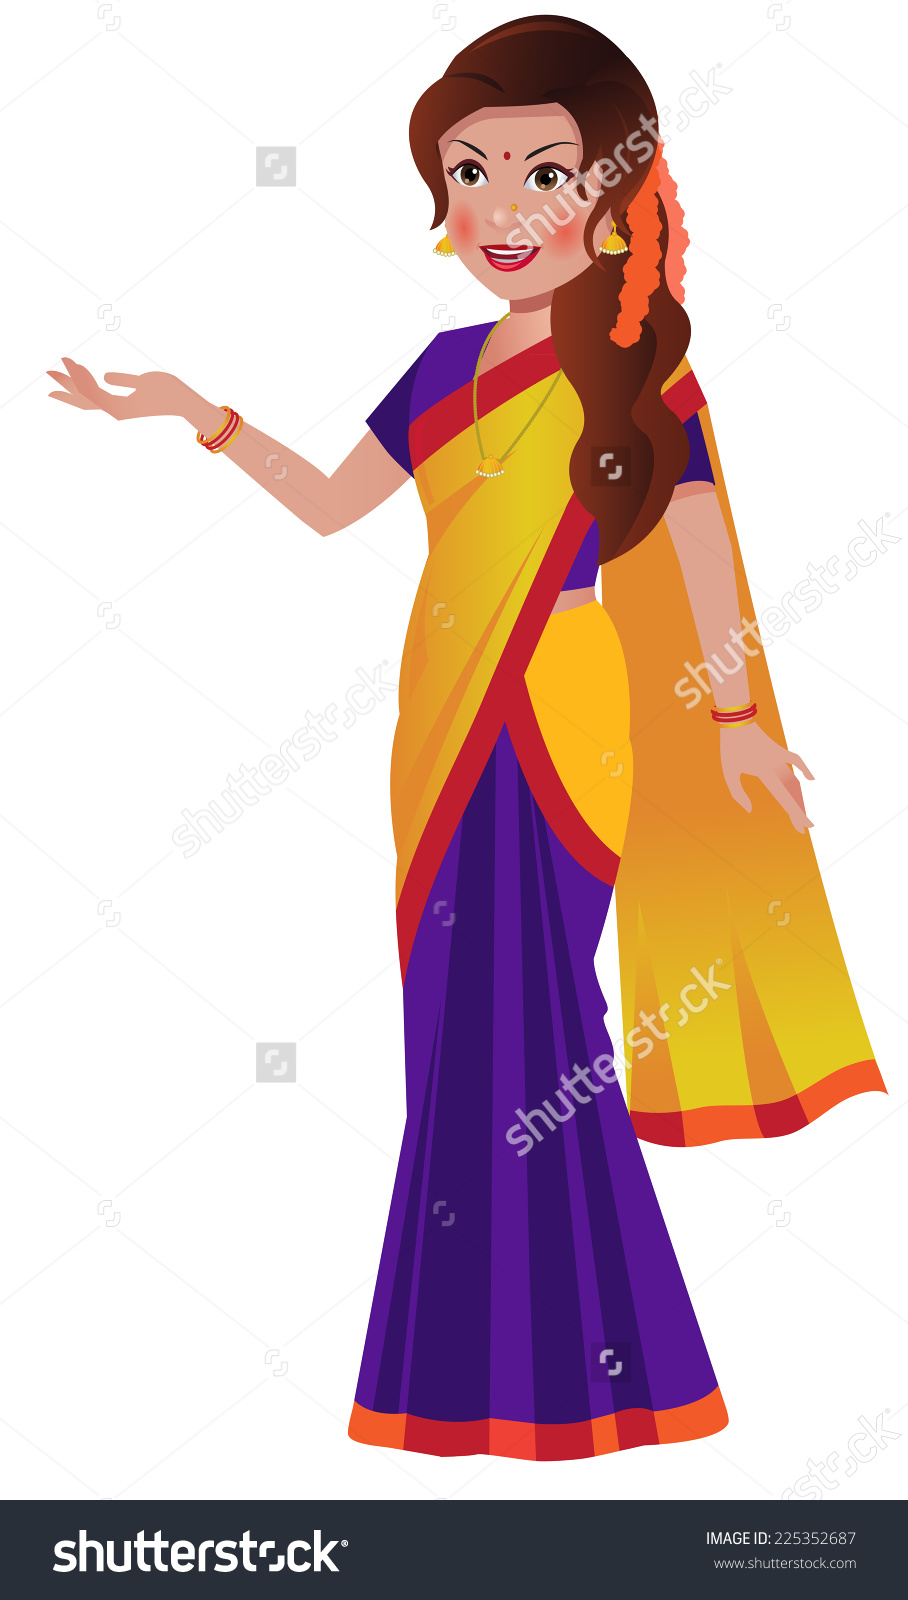 Traditional indian lady clipart graphic free South indian girl clipart - ClipartFox graphic free